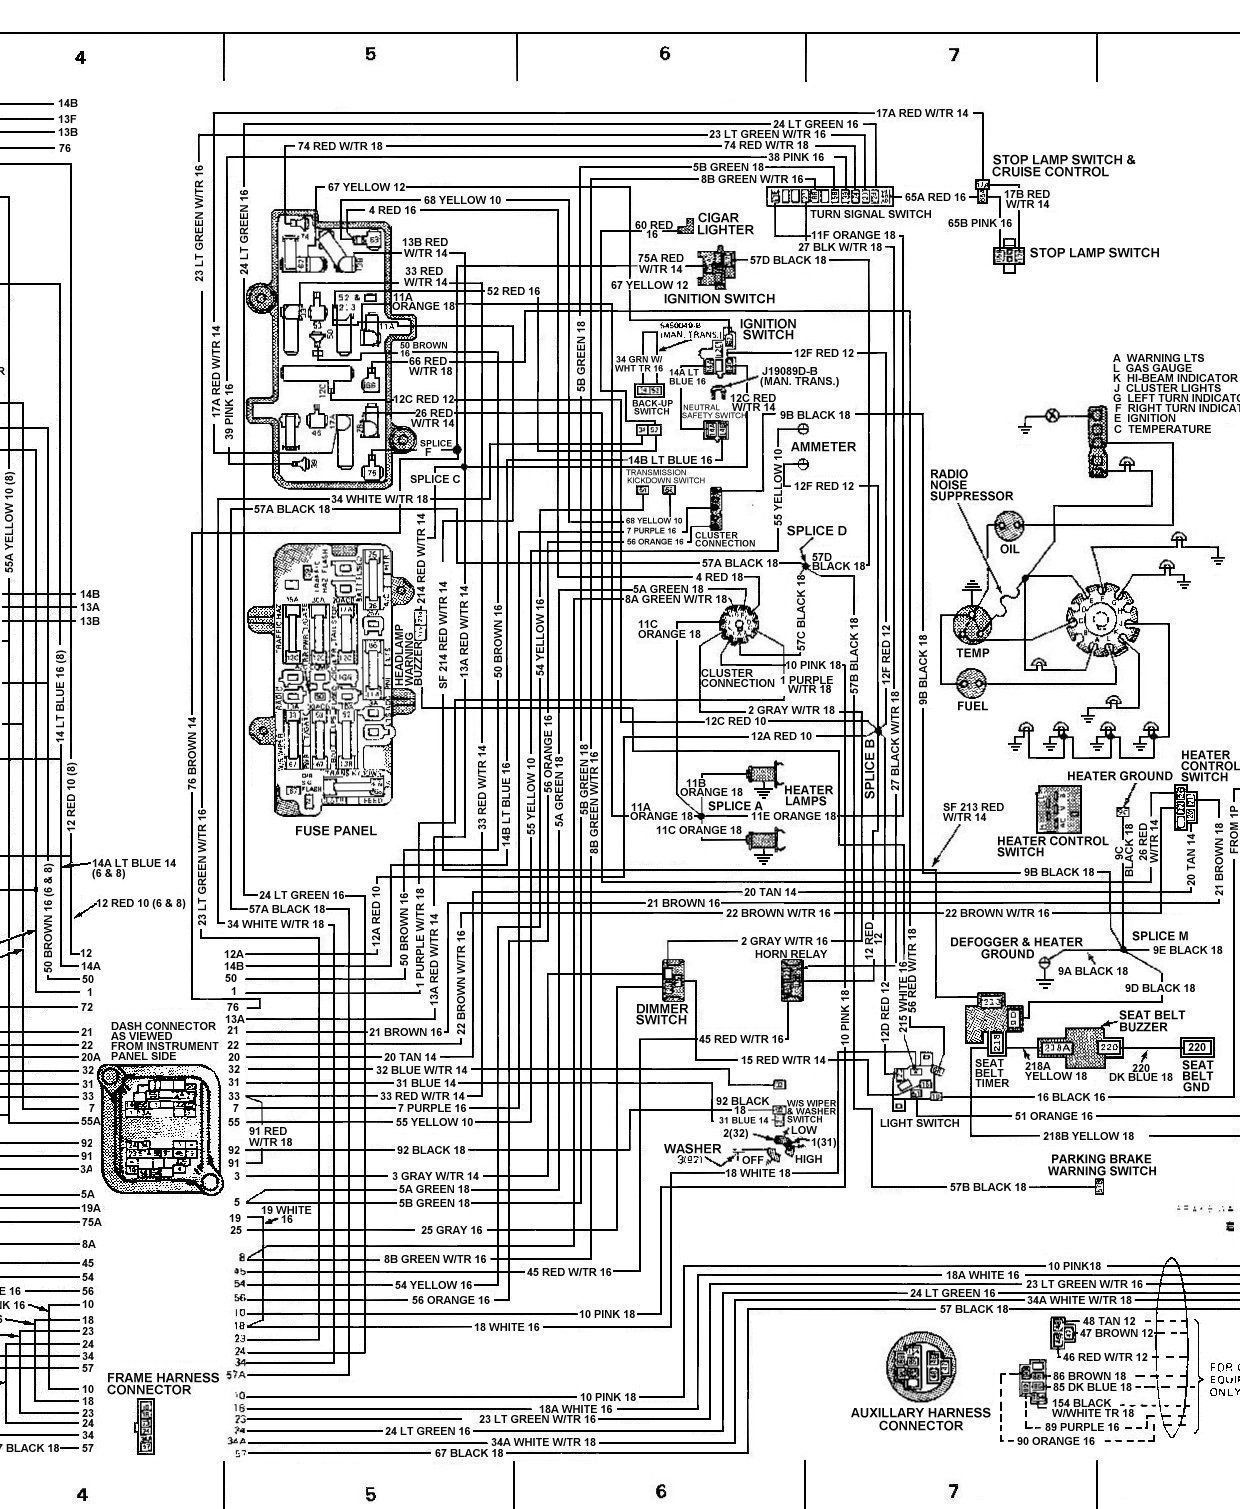 232951 jetta wiring diagram vw wiring diagrams instruction 2003 volkswagen jetta wiring diagram at webbmarketing.co